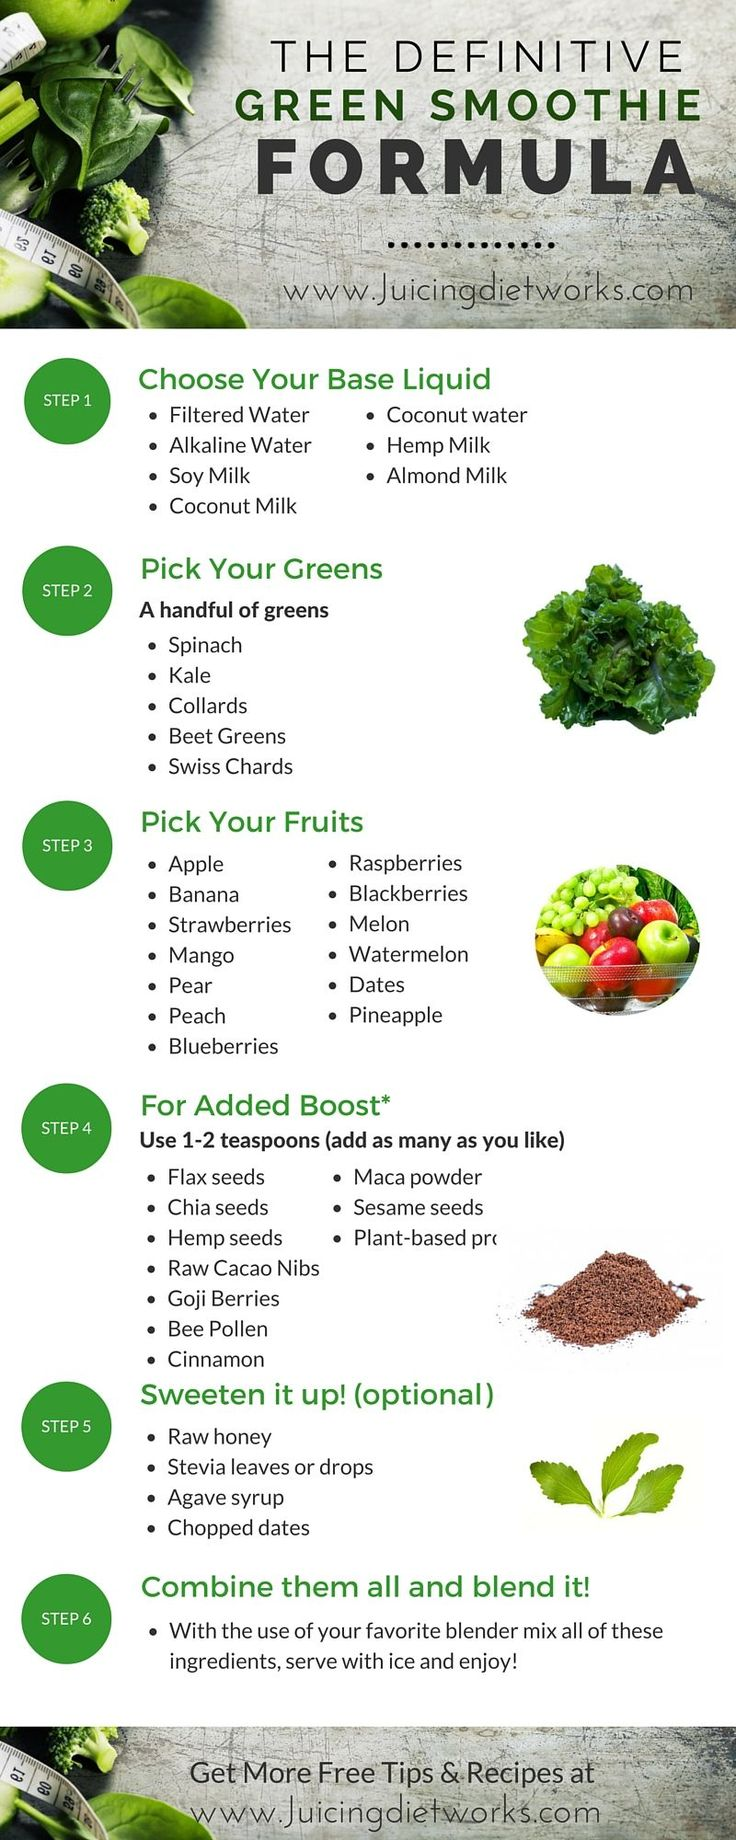 Welcome to Juicingdietworks! To help you get up to speed with creating delicious, nutritious and easy to prepare Green Smoothies, we've created this infographic: The Definitive Green Smoothies Formula We've also added tons of useful resources about Green Smoothies. We know that you'll find these resources useful and actionable! Feel free to share this page …